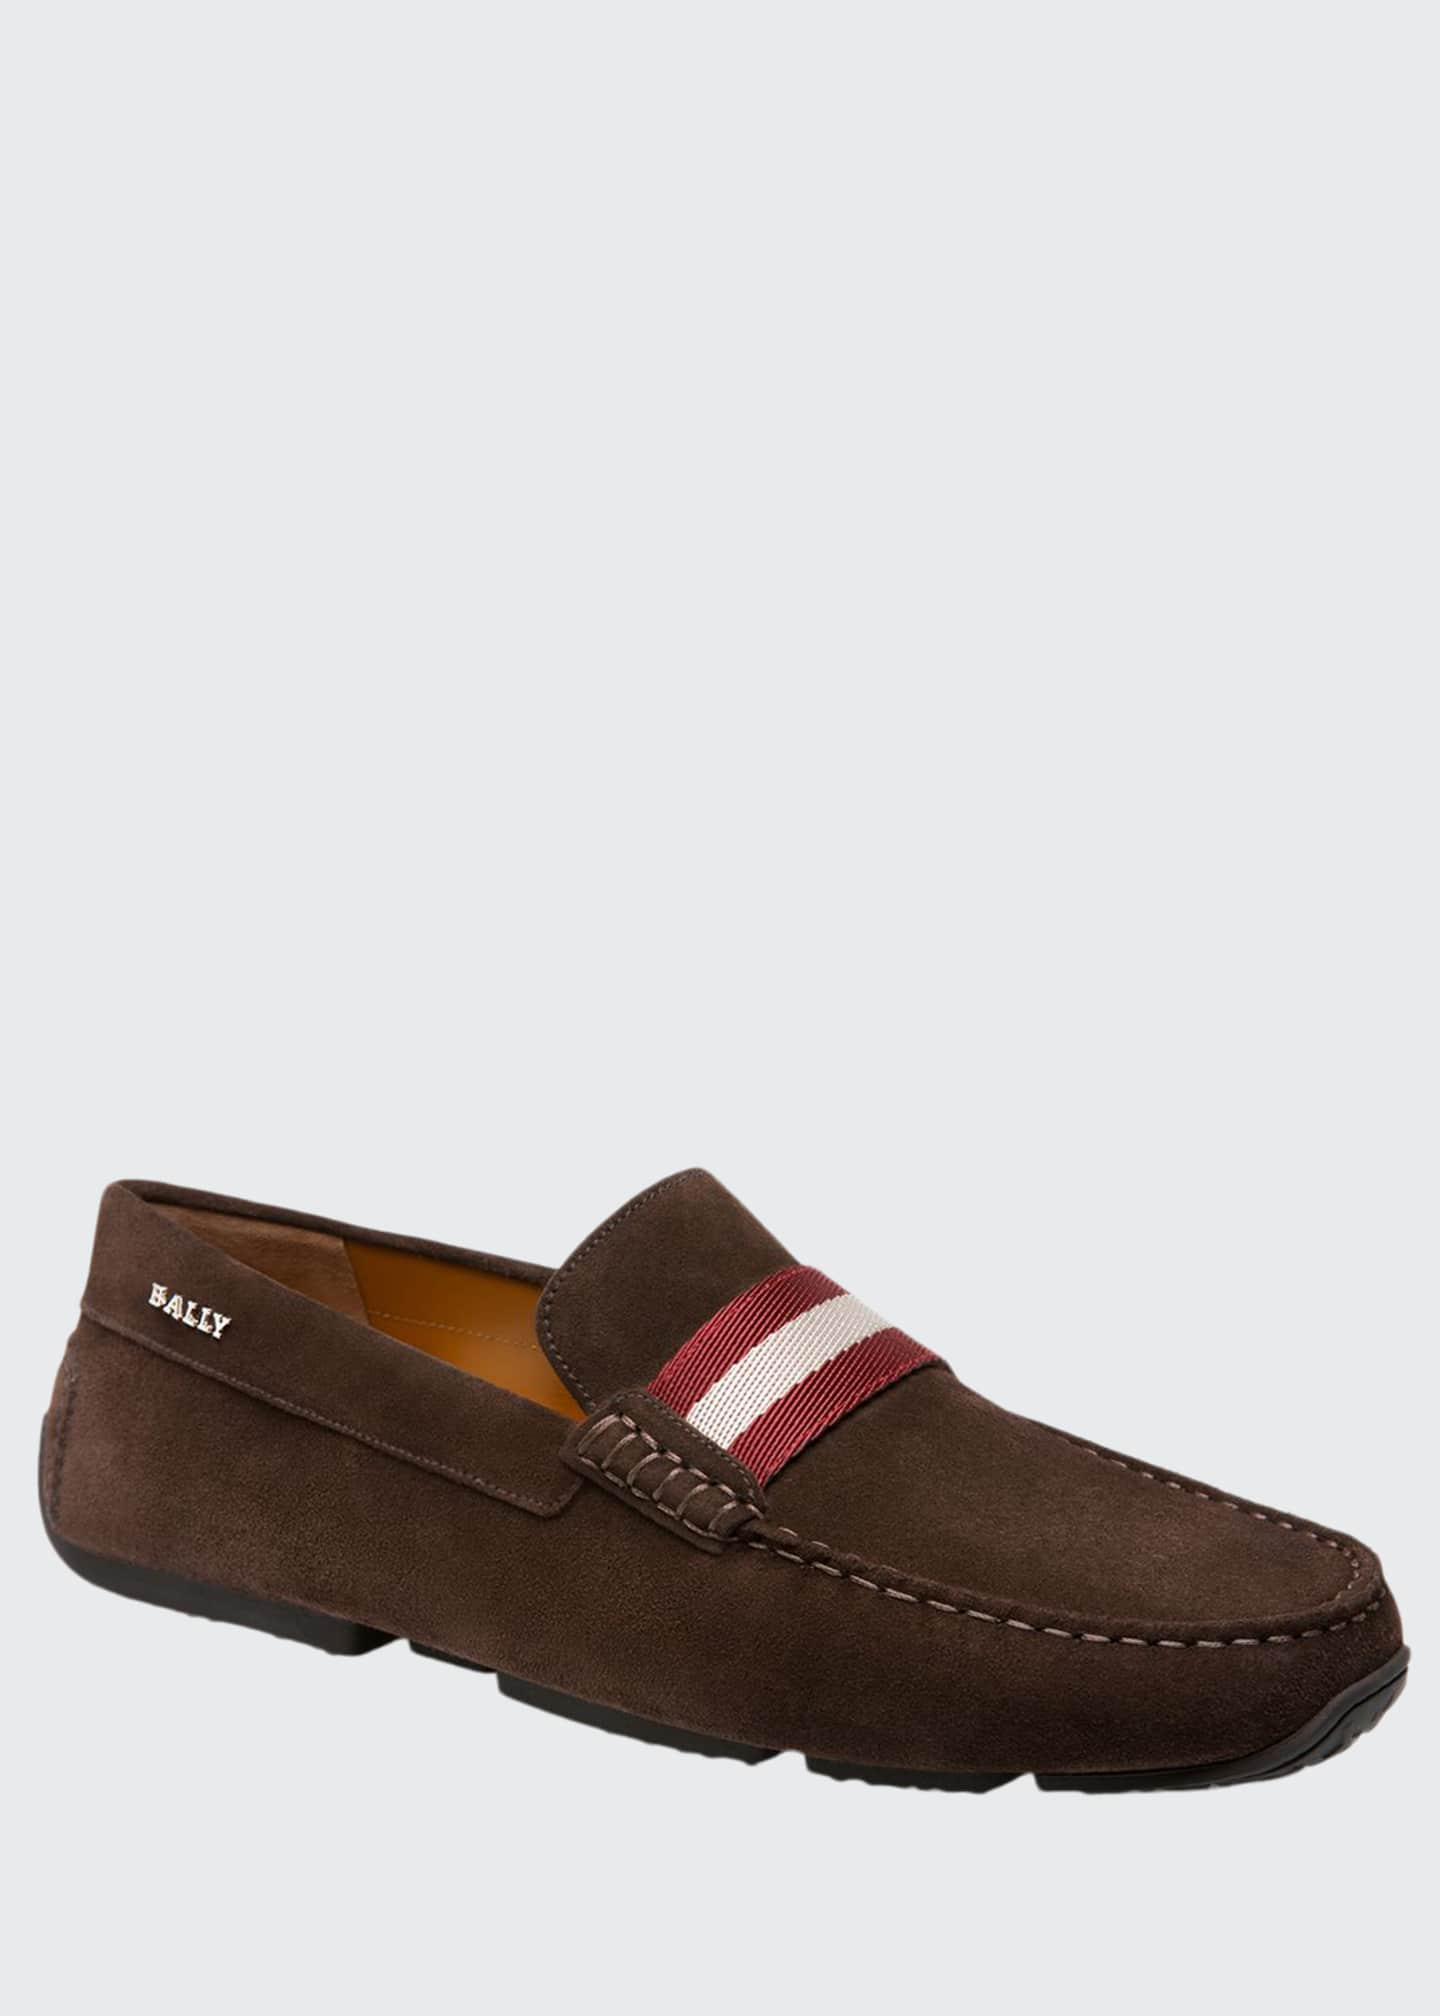 Bally Men's Pearce Calf Suede Drivers